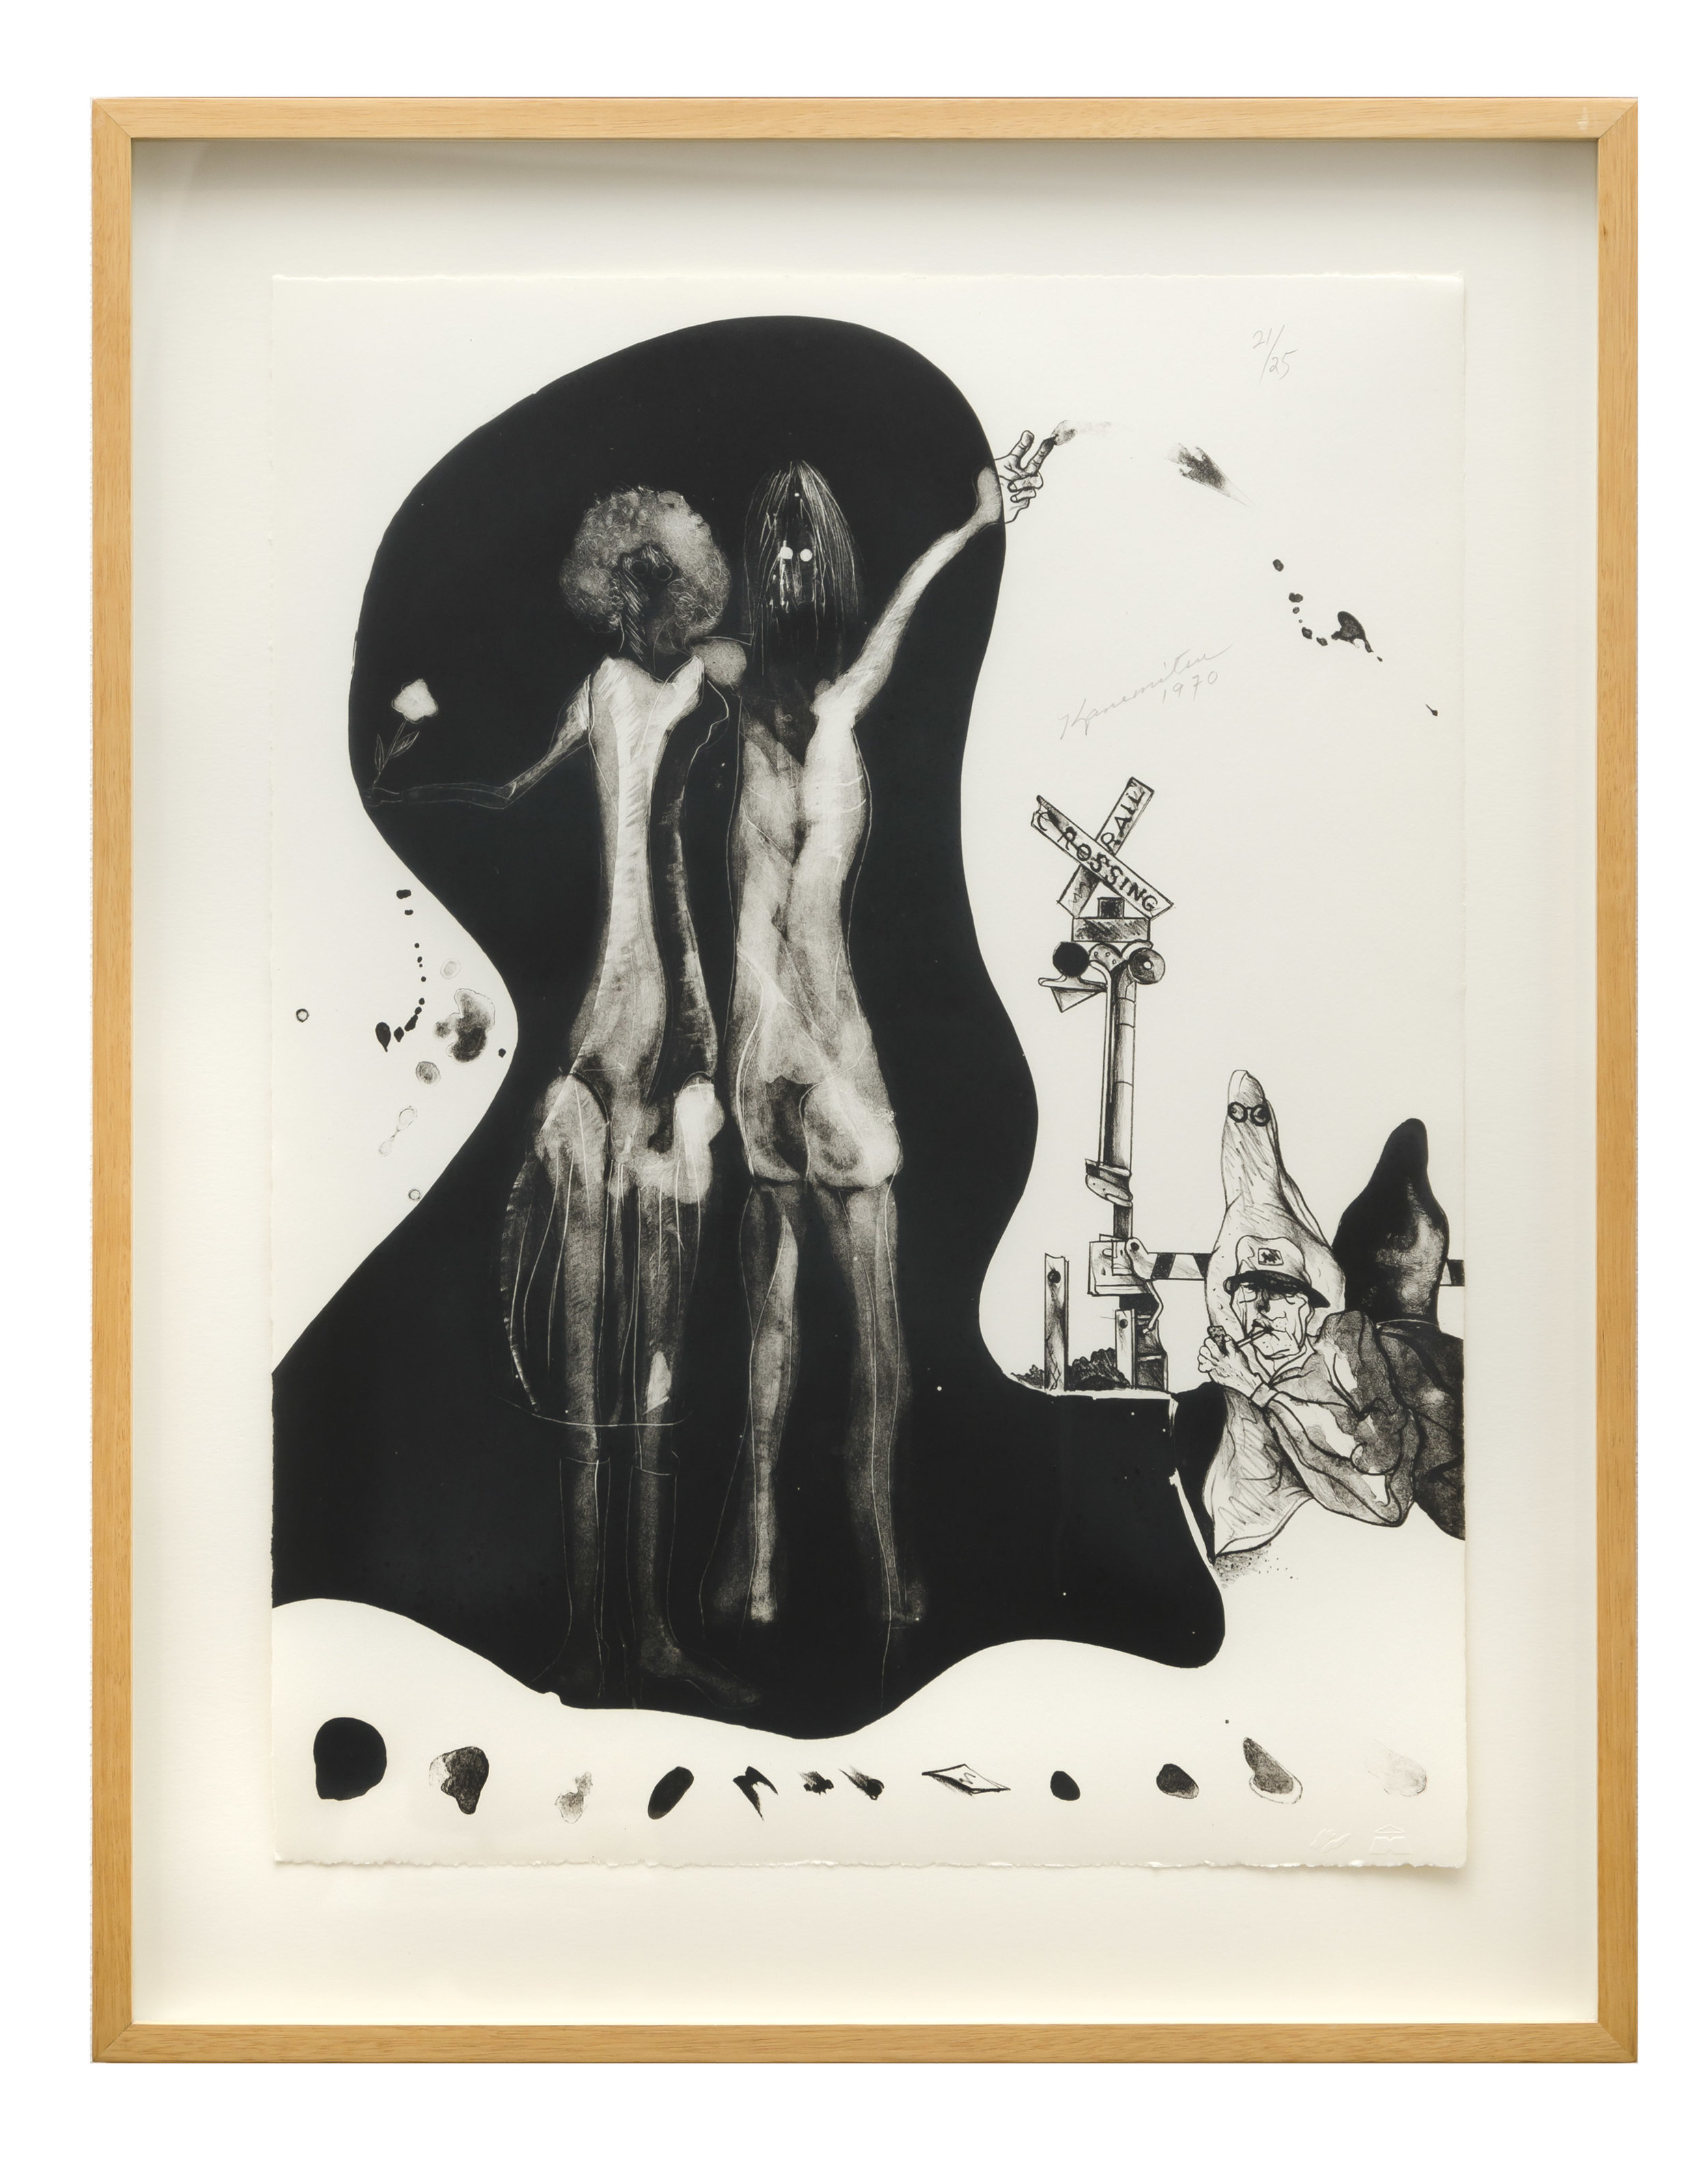 Hitchhiker Ghost , 1970 lithograph 20 x 15 inches; 50.8 x 38.1 centimeters